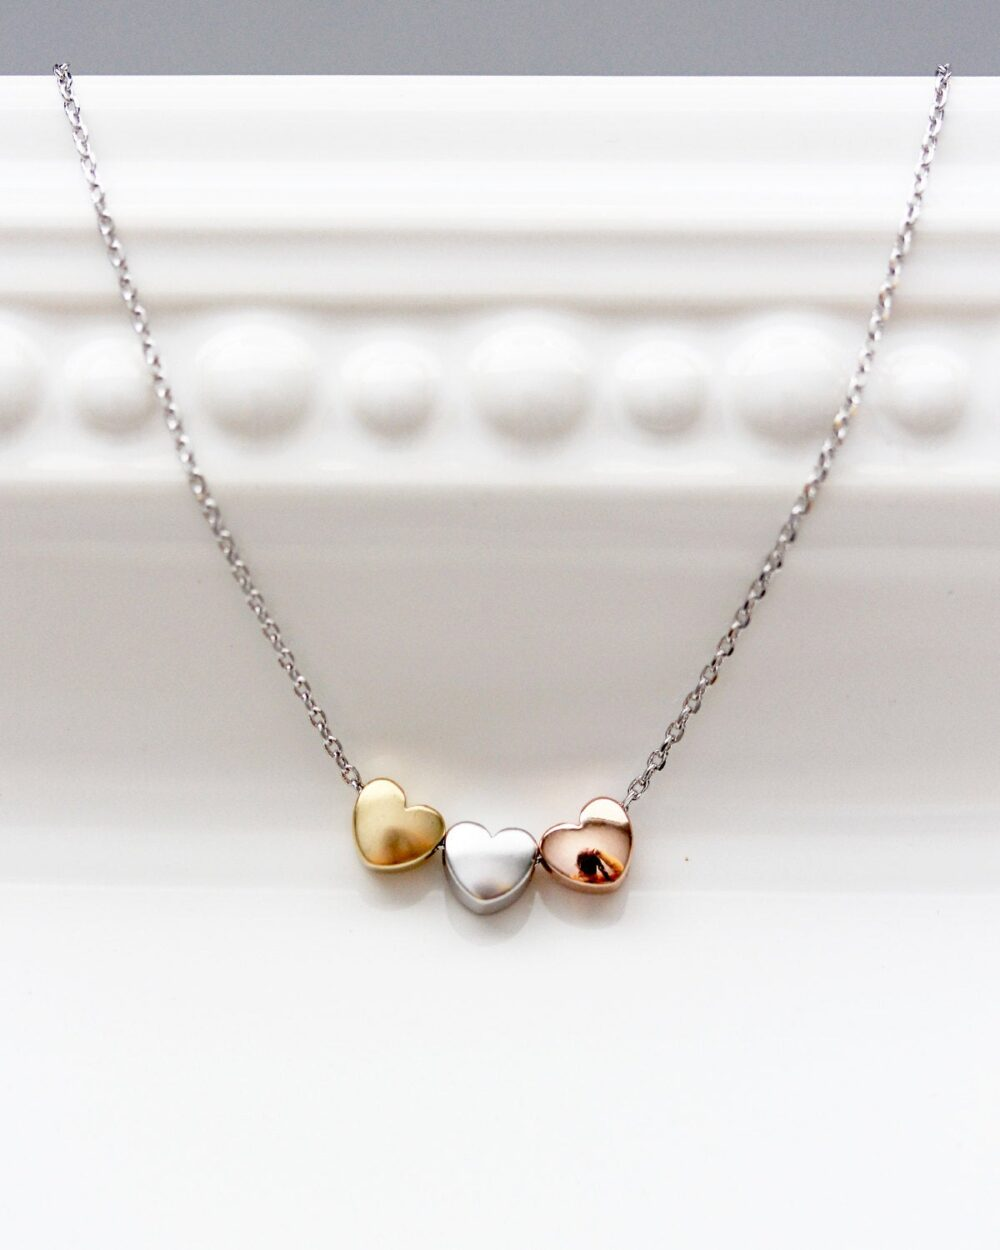 Three Hearts Necklace, Tri Tone Charm Silver Gold Rose Necklace Bridal Bridesmaid Gift Wedding Heart Jewelry Love Dainty Chm